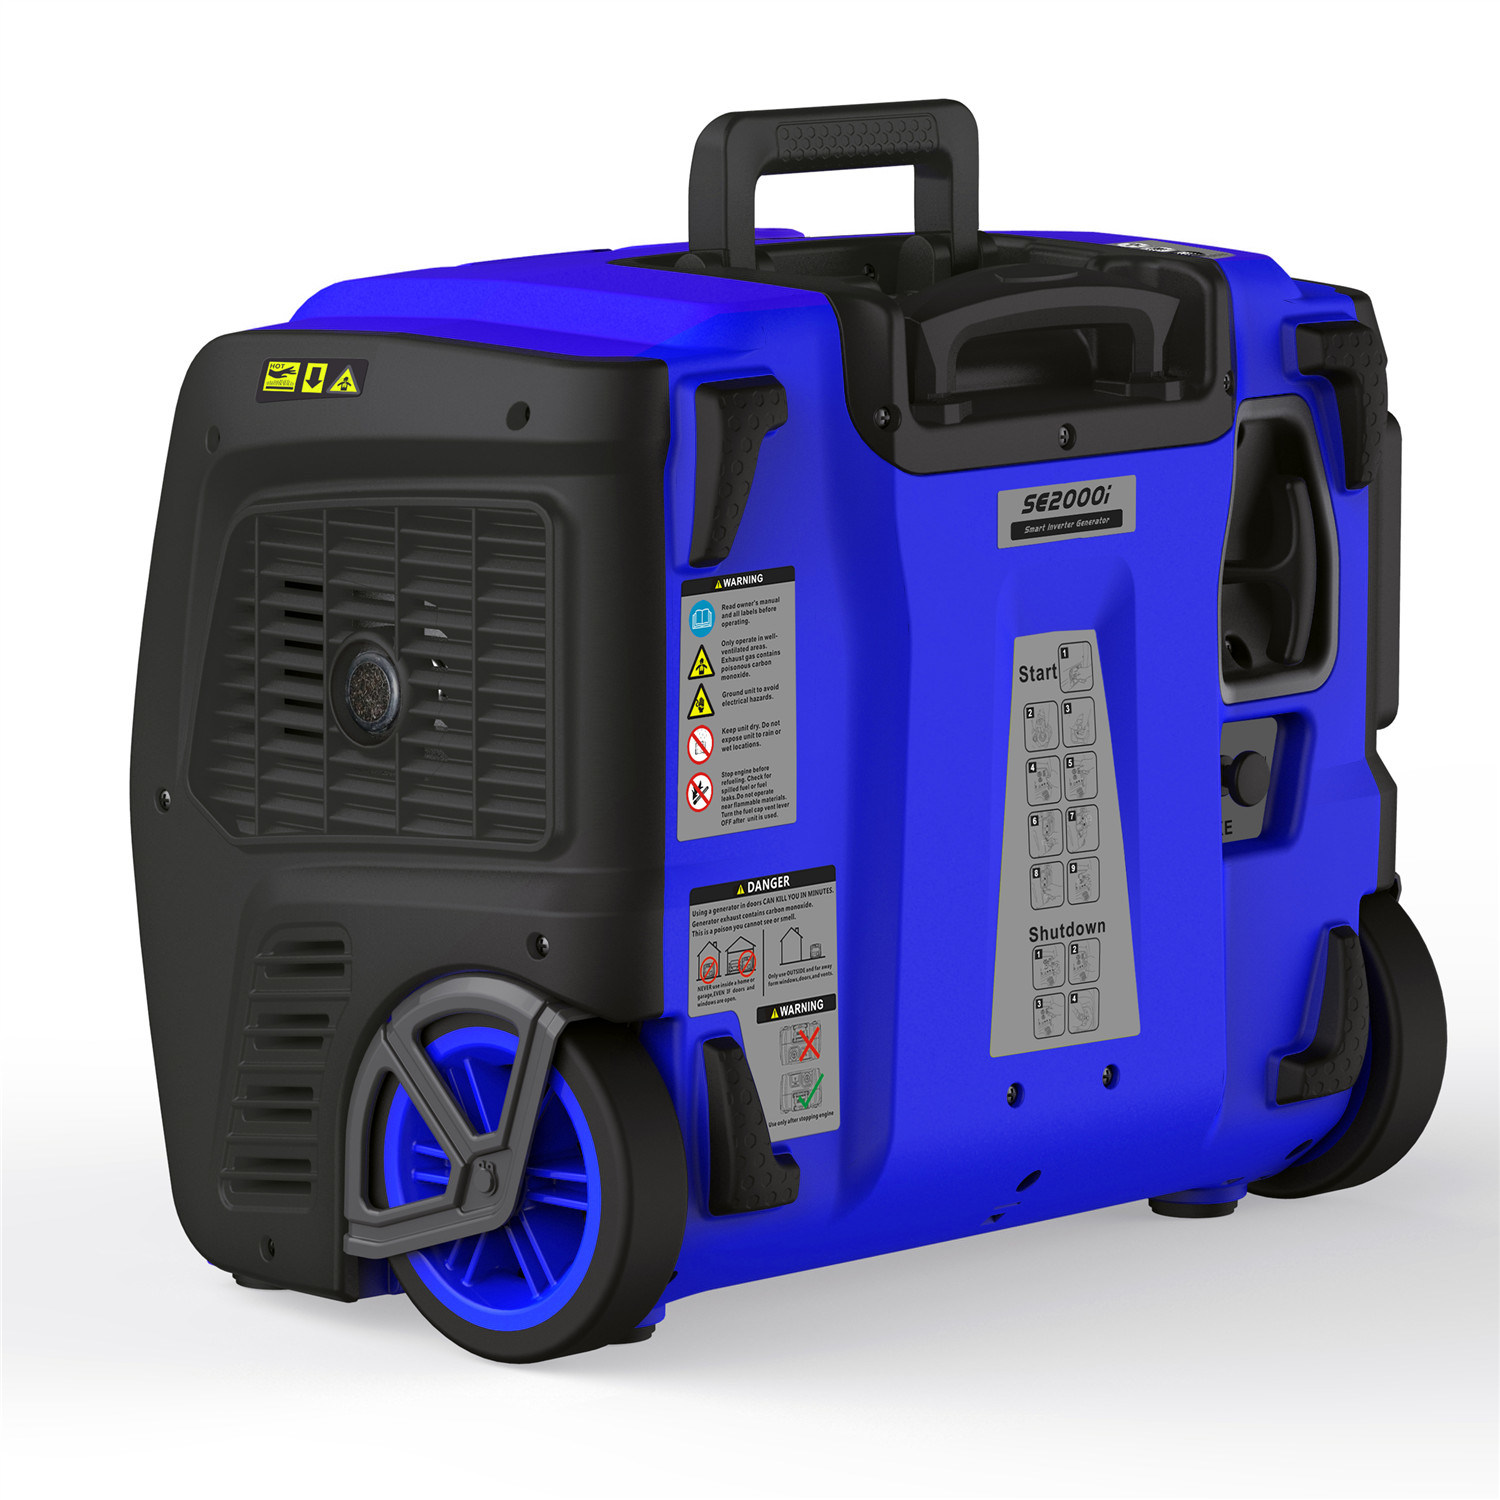 2kw Portable Digital Inverter Generator with GS/Ce/ETL/EPA/Carb/E13